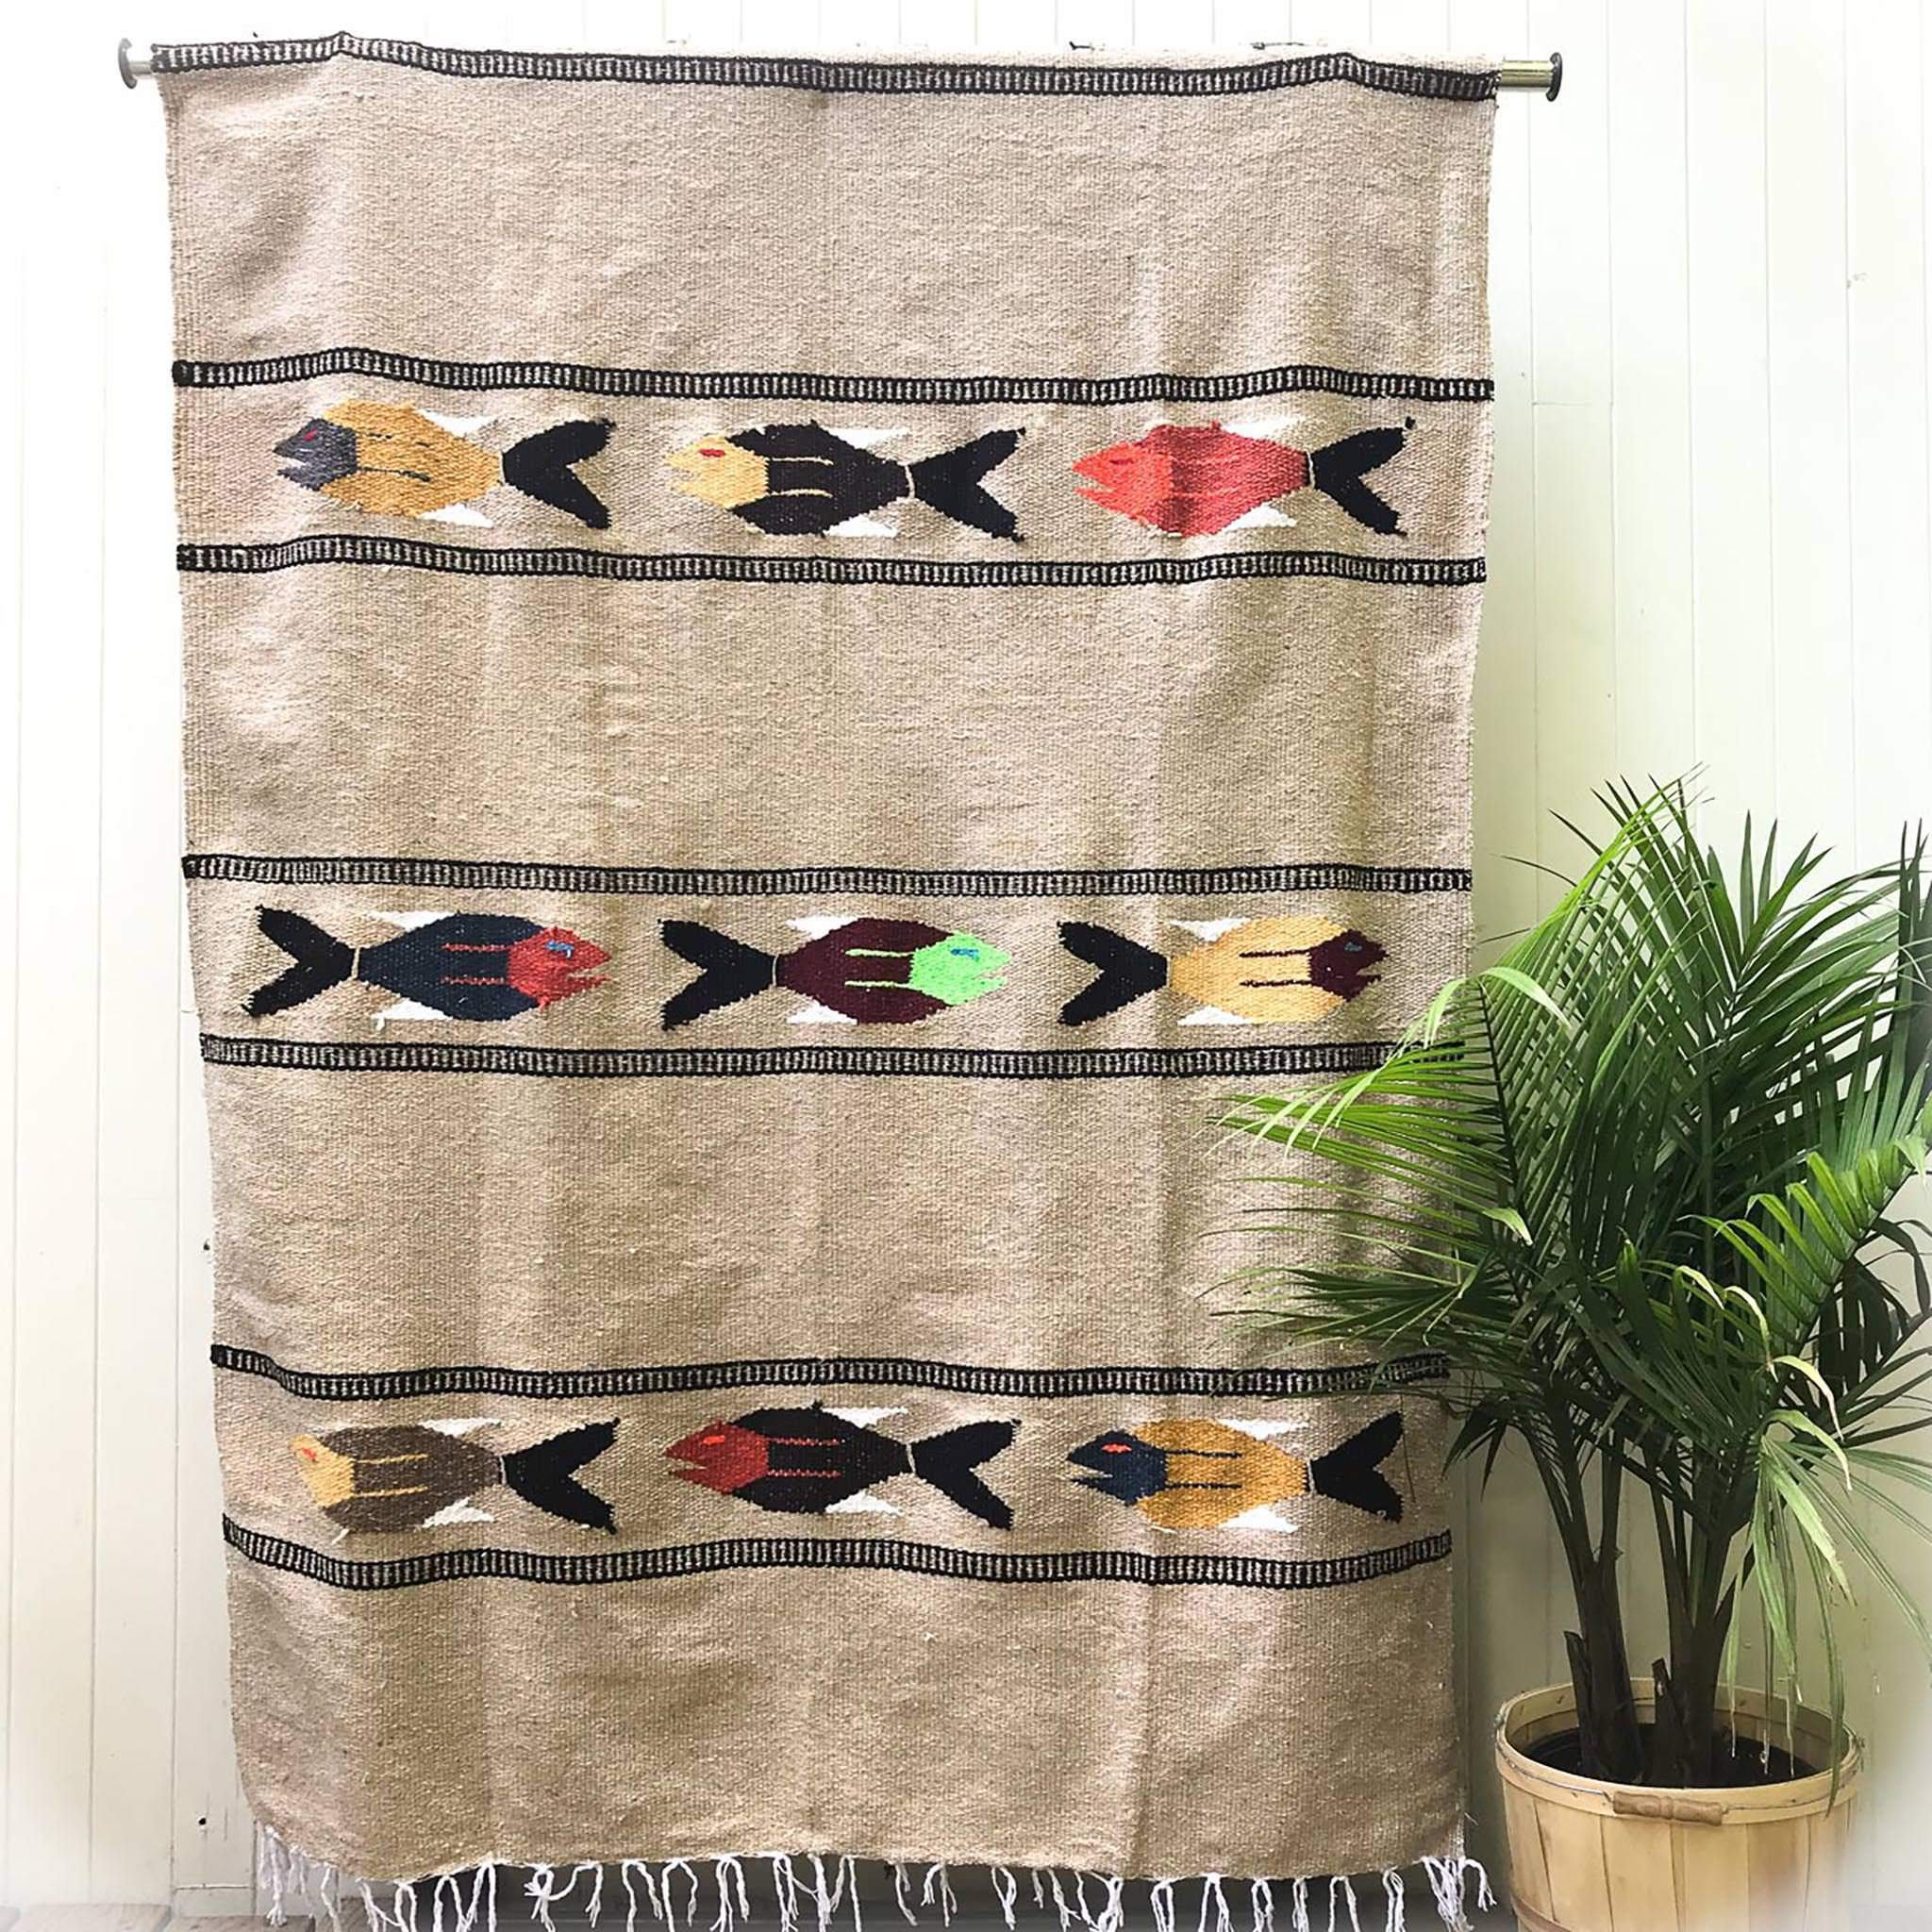 Woven blanket in natural tan with pattern of three multicolored fish in four alternating stripes, with white fringed edge, shown hanging against white wall with potted palm plant at side.